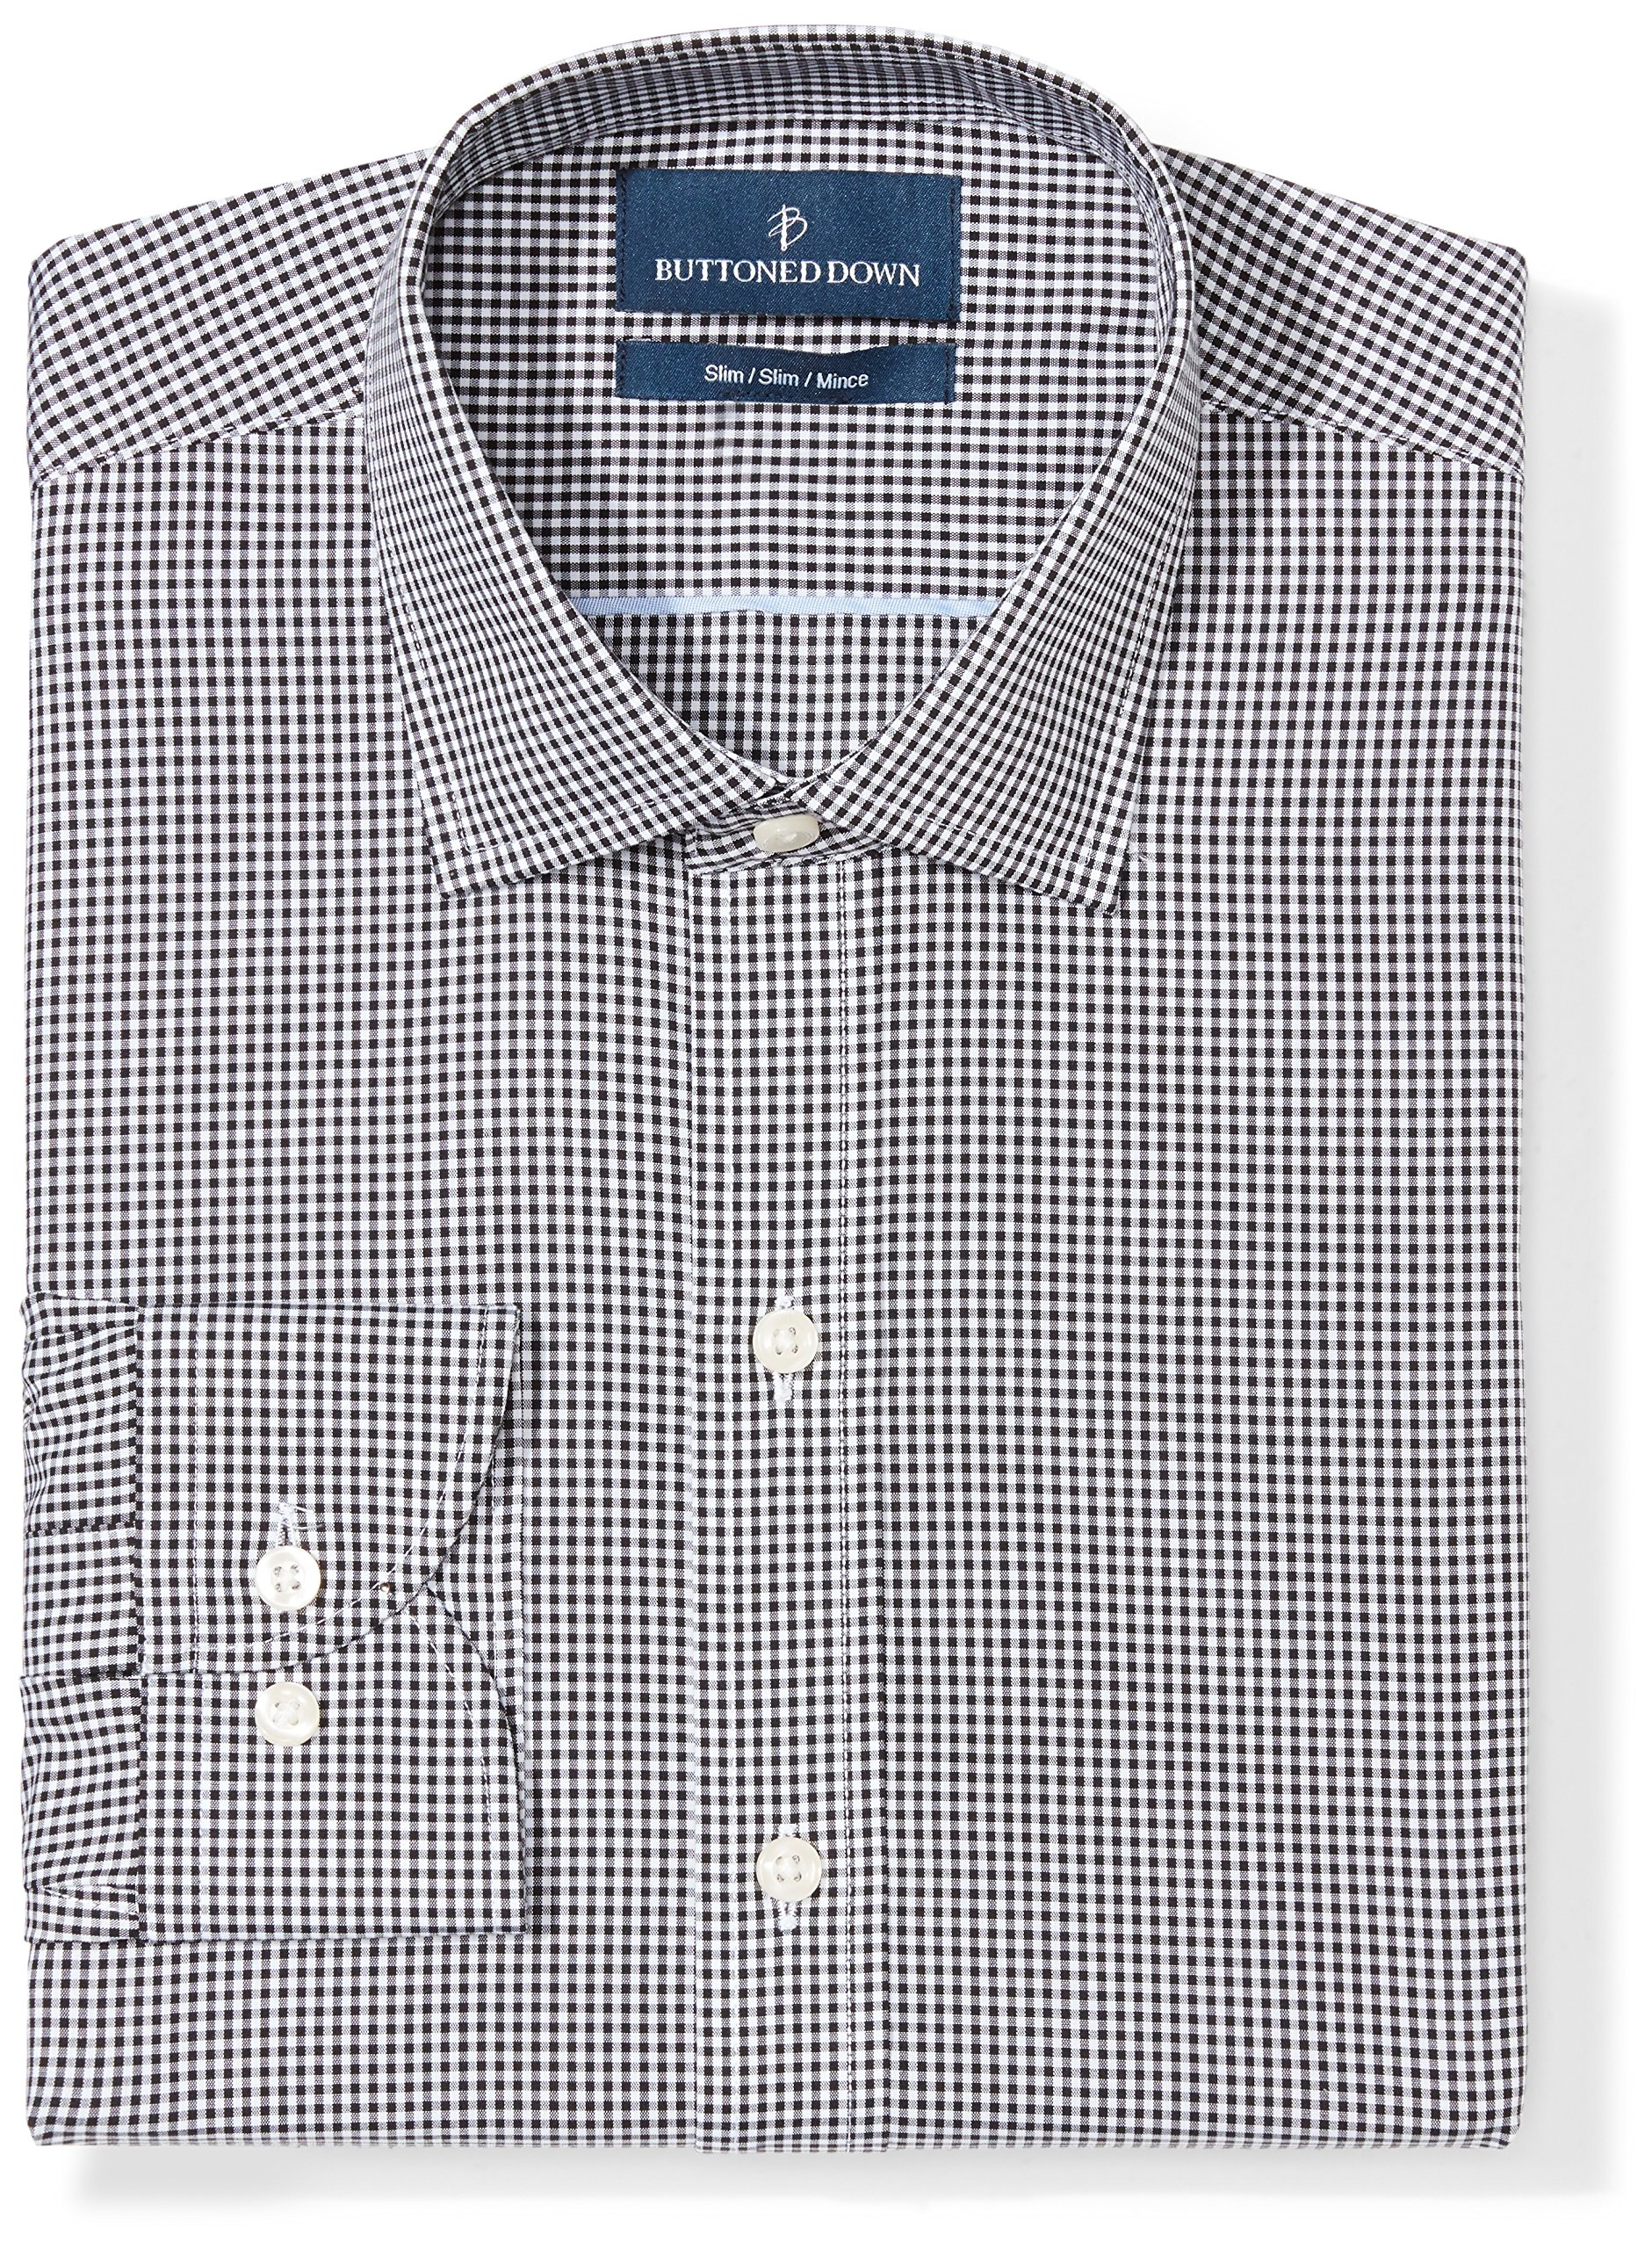 Buttoned Down Men's Slim Fit Spread-Collar Pattern Non-Iron Dress Shirt, Black Small Gingham, 17'' Neck 32'' Sleeve